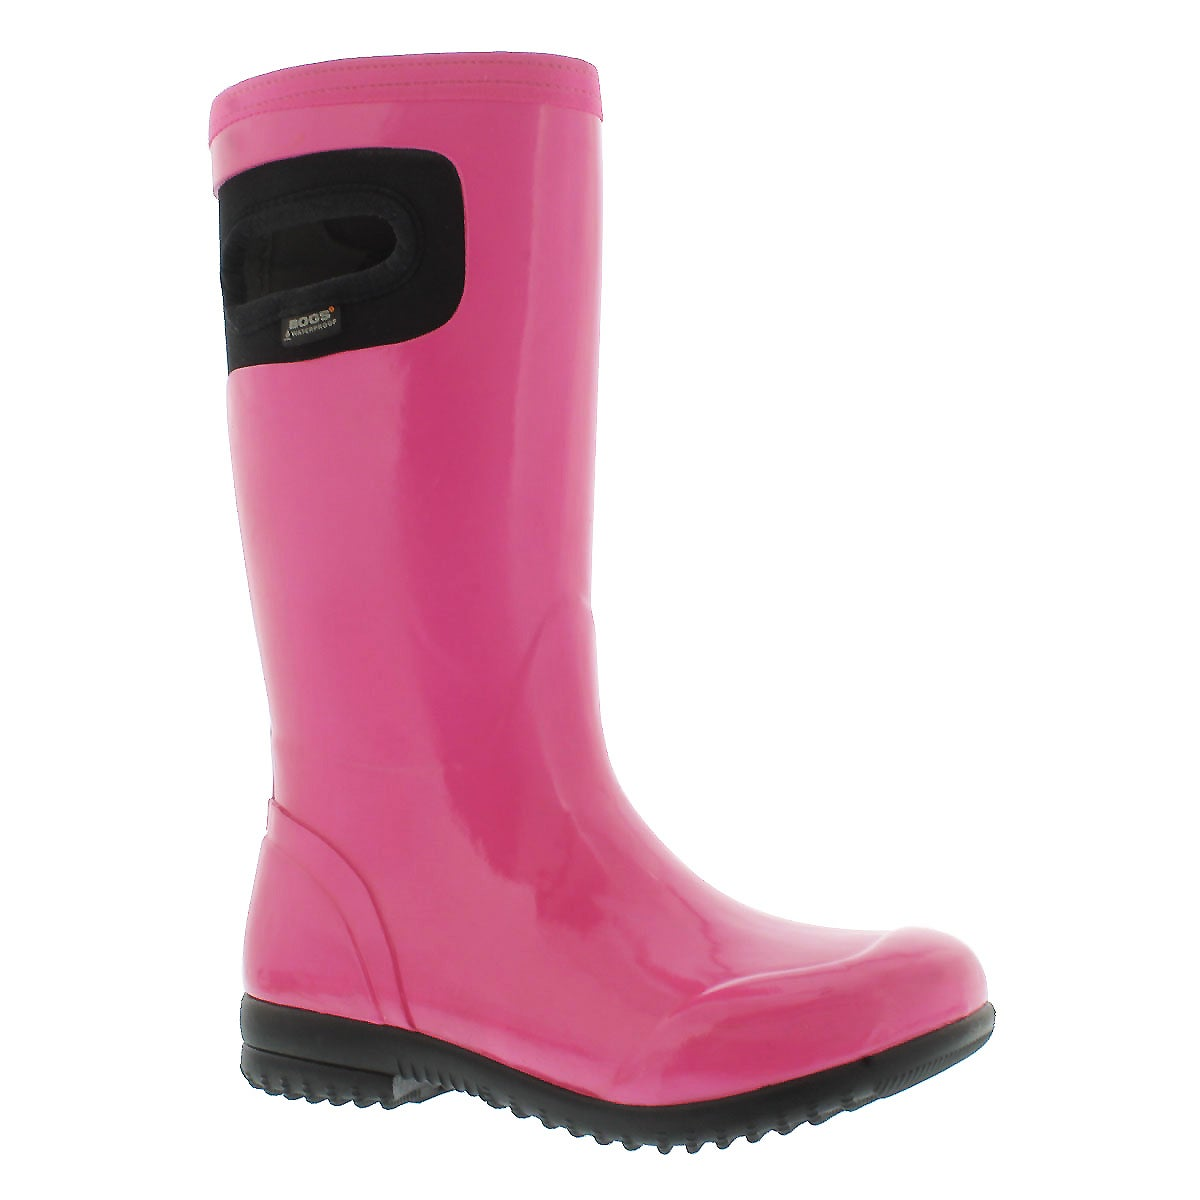 Girls' TACOMA SOLID pink rain boots